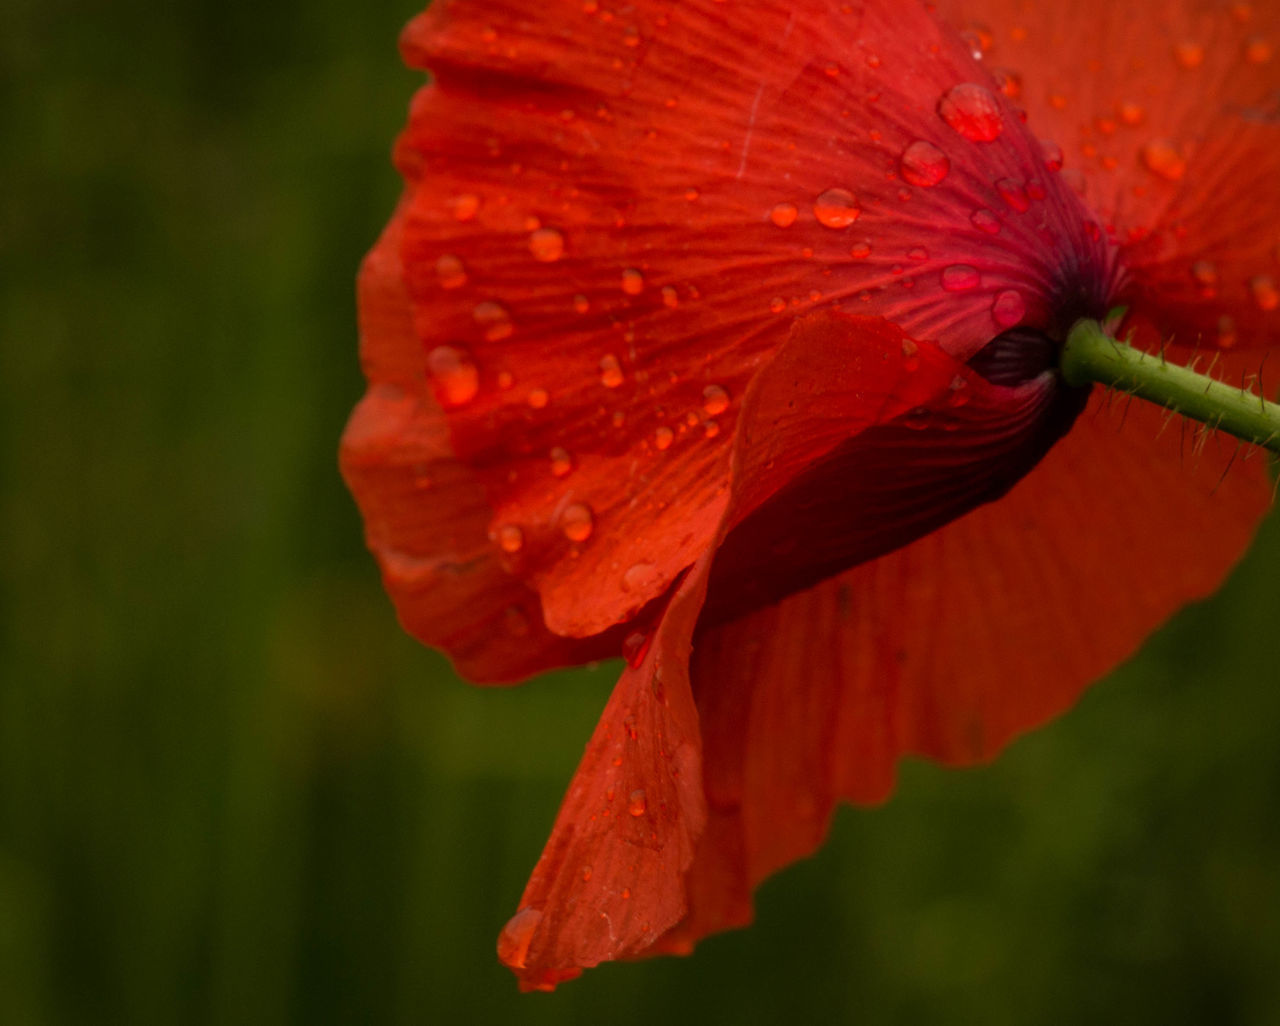 I feel like dancing.... Beauty In Nature Close-up Flower Focus On Foreground Fragility Freshness Klaproos Nature Poppy Poppy Flowers Raindrops Red Eggs Close Up Close Up Technology Green Green Color Red Color Nature Photography Naturelover